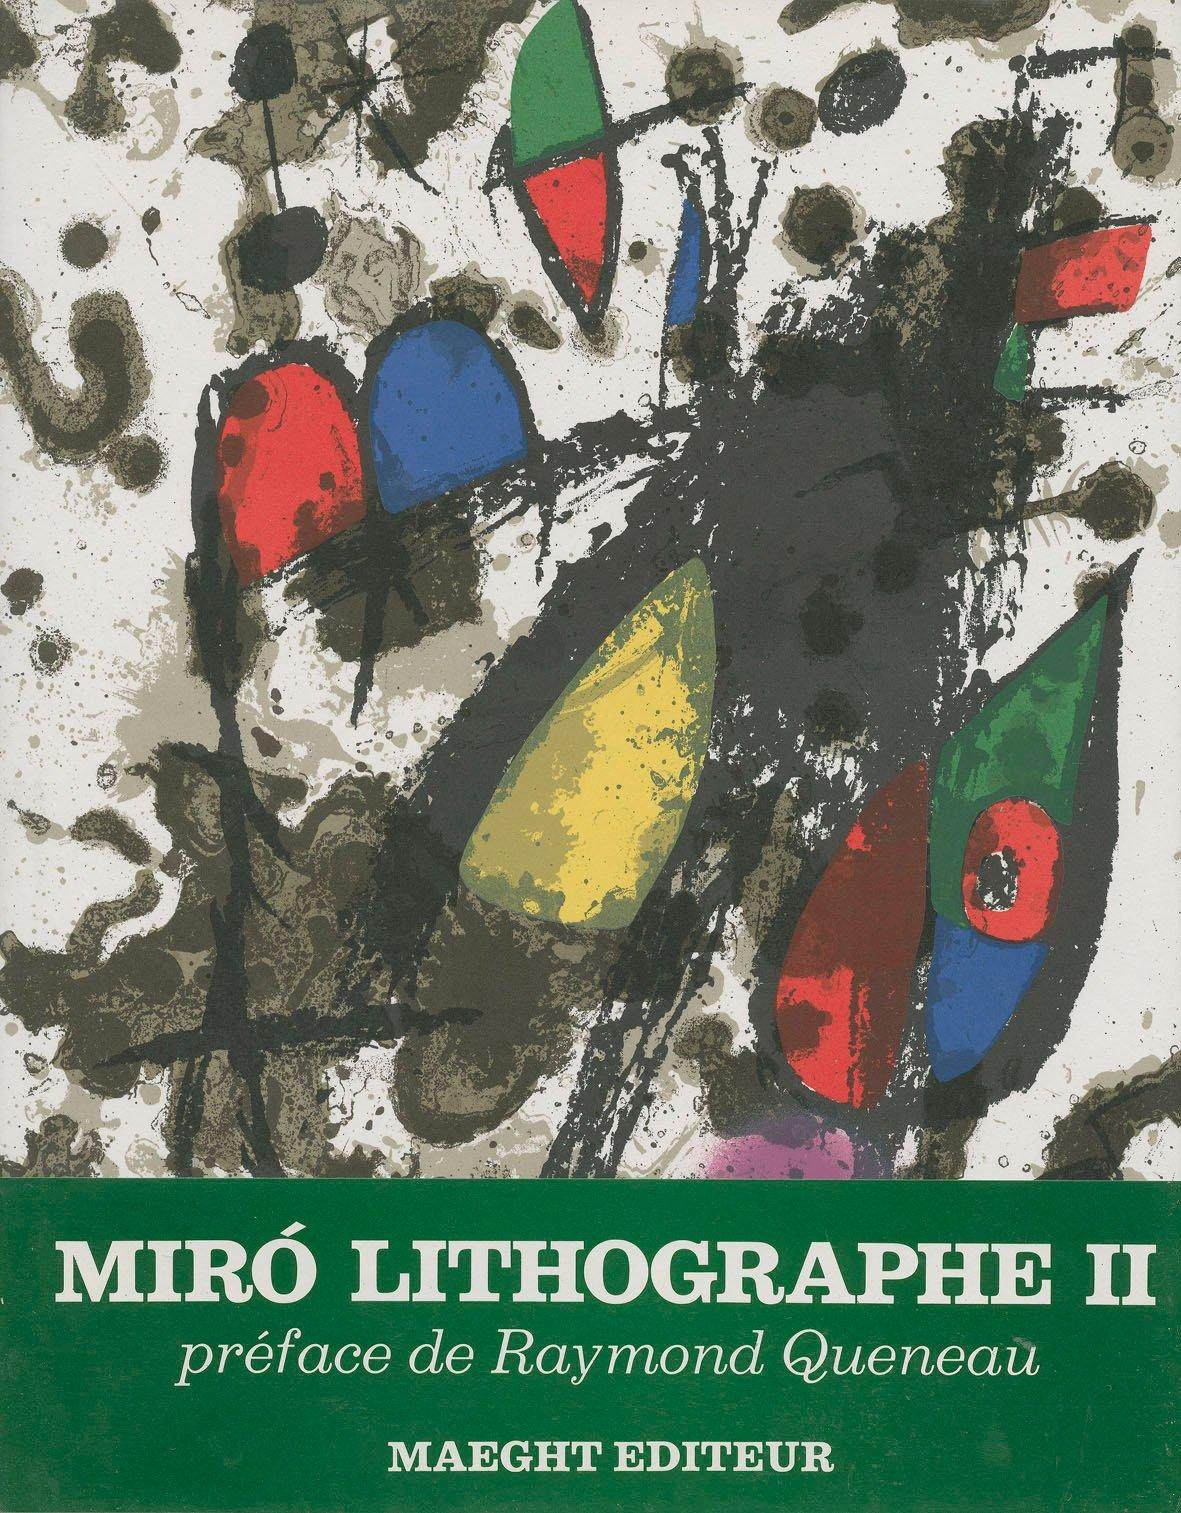 Miró lithographs (lithographe) II, 1953-1963